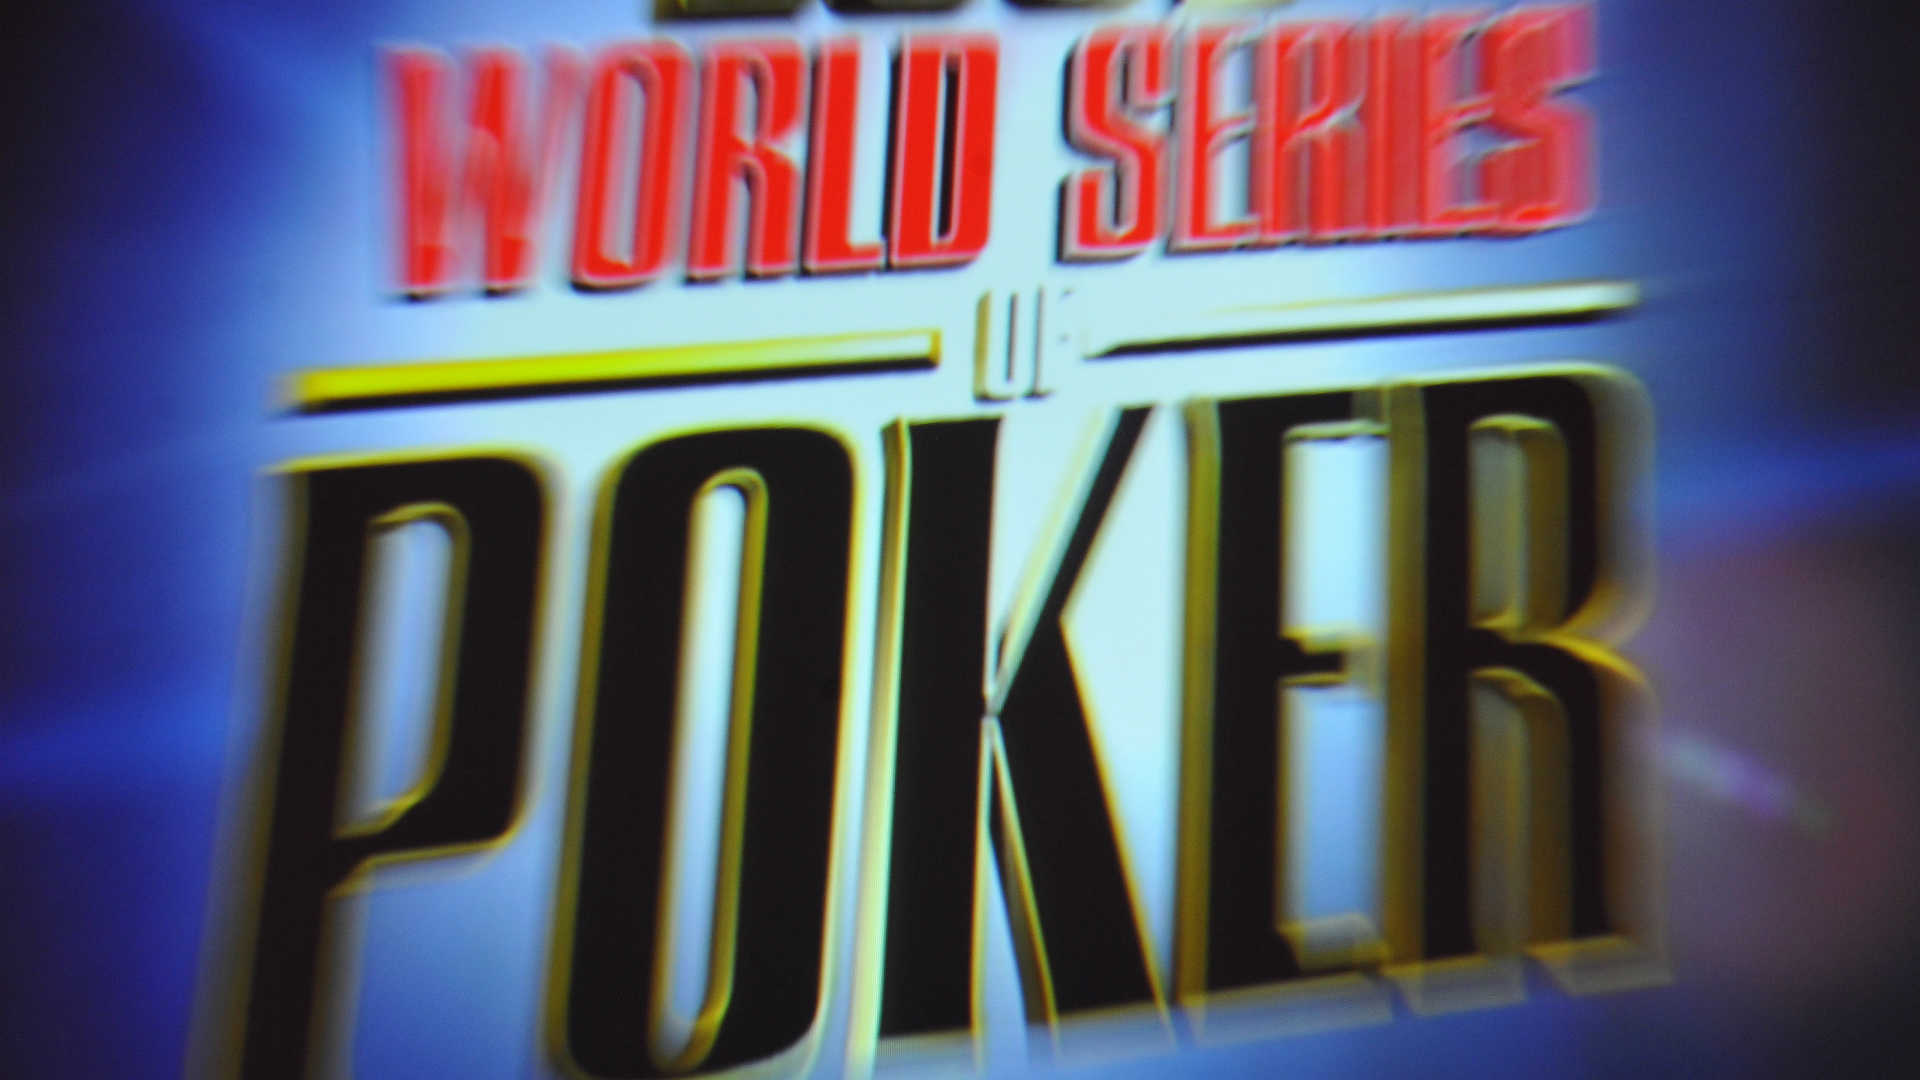 World Series of Poker 2019 results, payouts: Hossein Ensan takes bracelet, $10M first prize